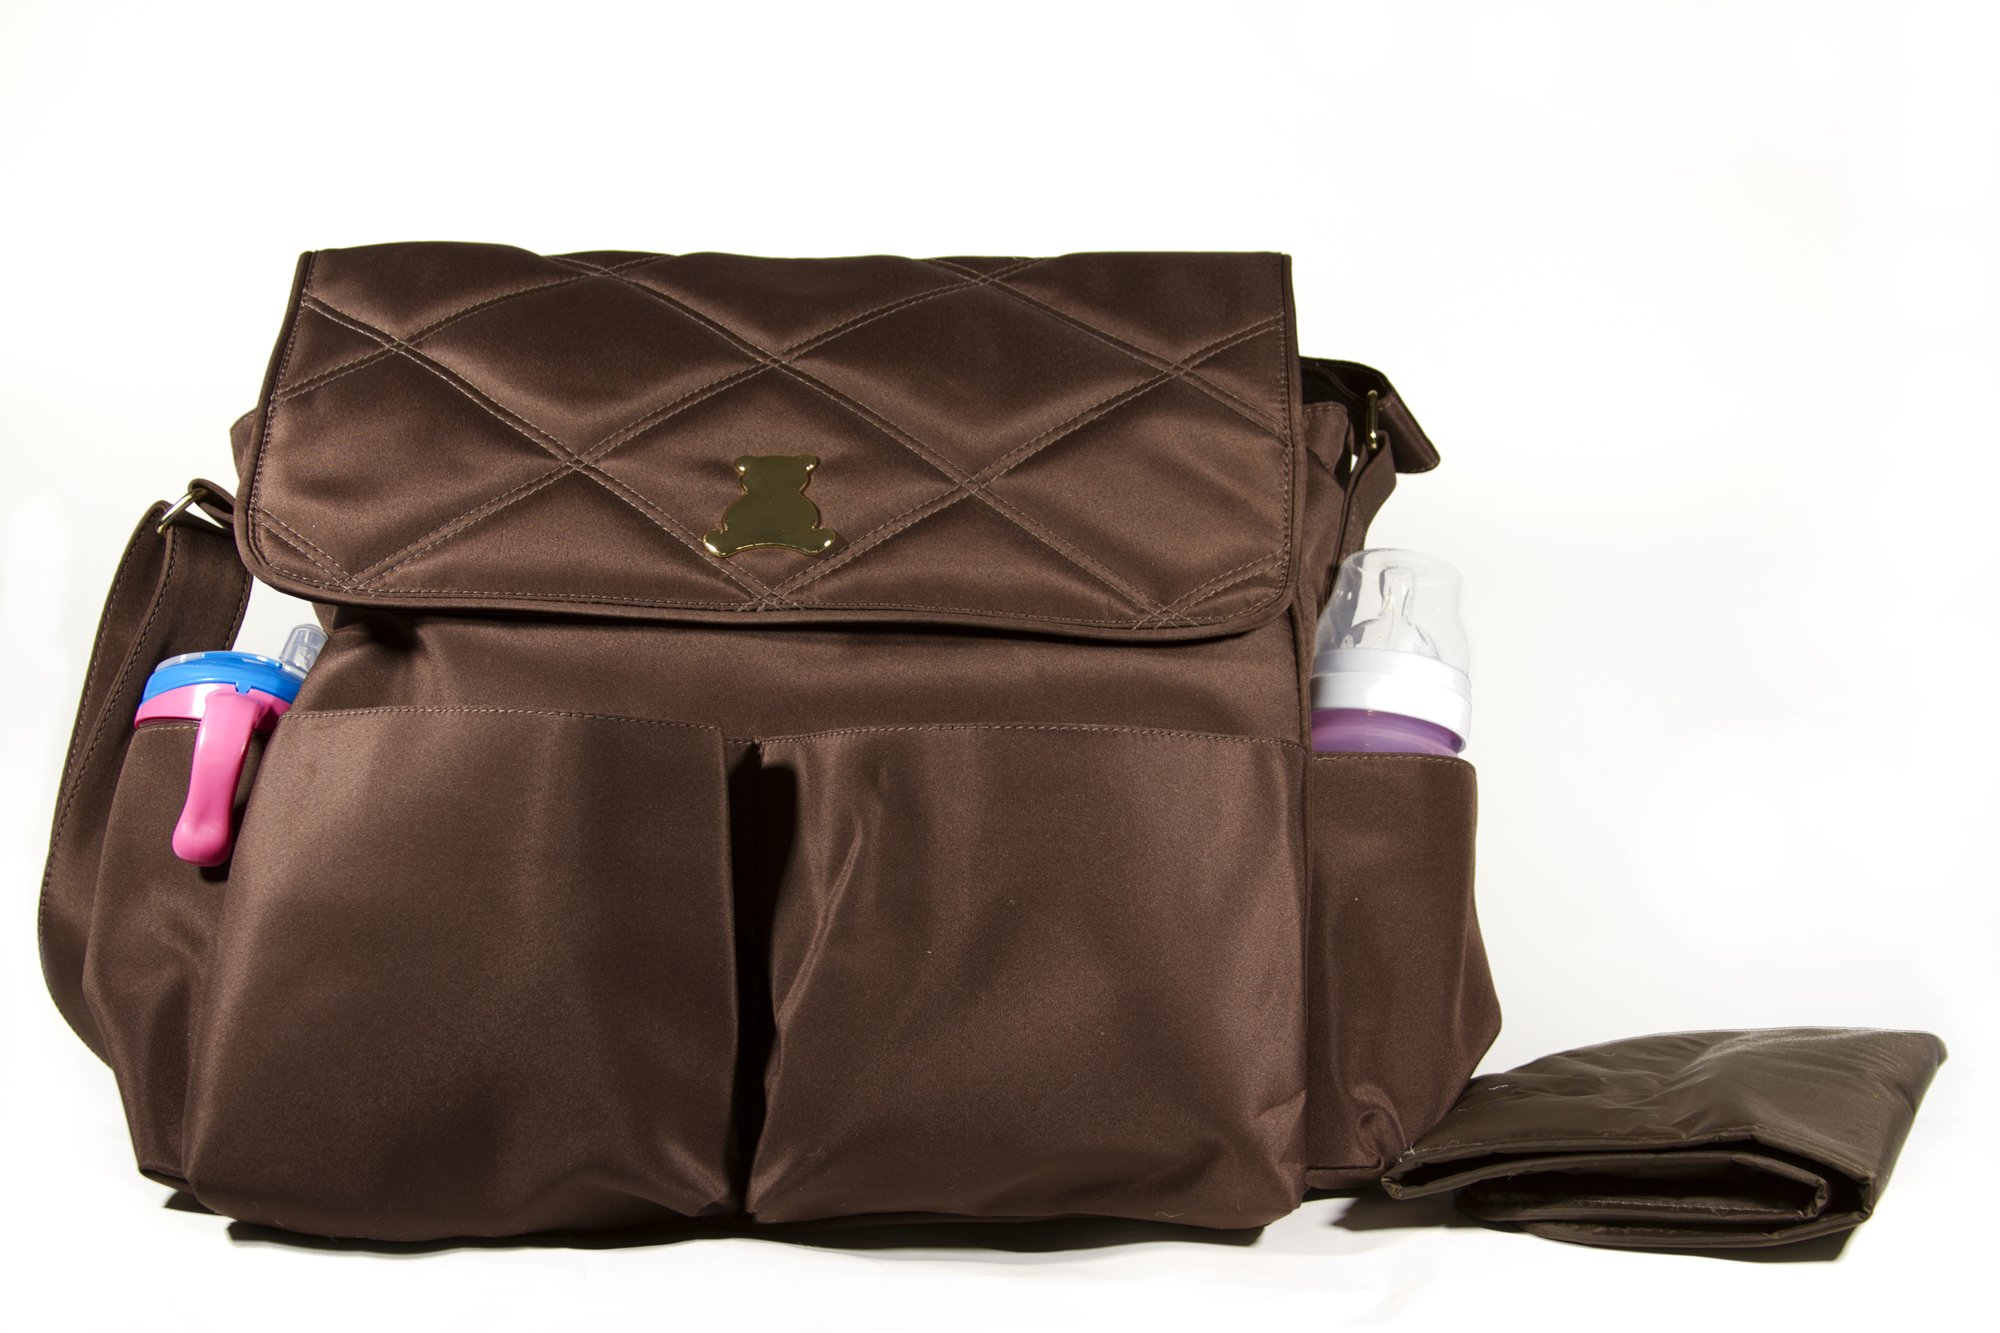 BL BABY - Elegance Collec. - MED - Crossbody Bag - Themal & Front Pockets - Brow - 7x16x12''